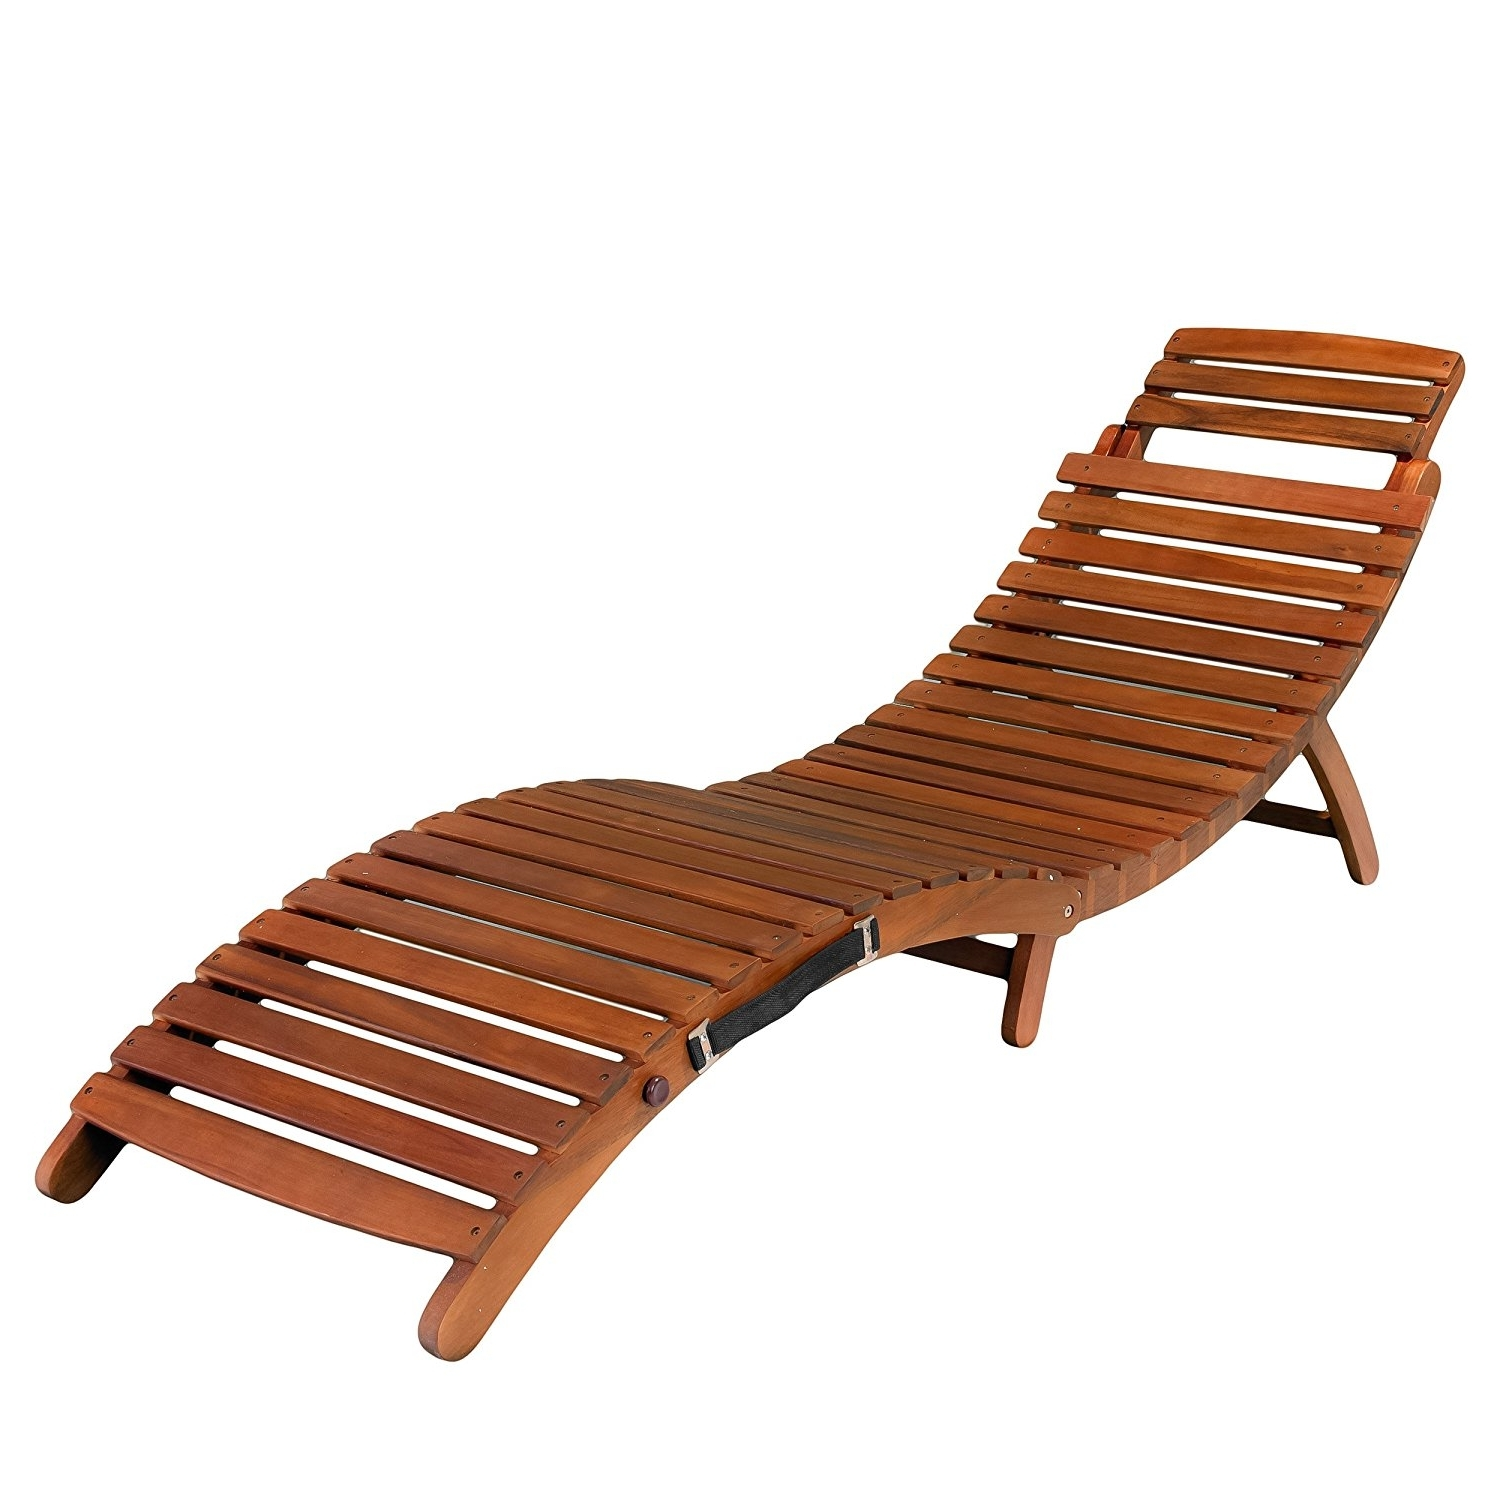 Amazon: Best Selling Del Rio Wood Outdoor Chaise Lounge Intended For 2017 Teak Chaise Lounges (View 7 of 15)